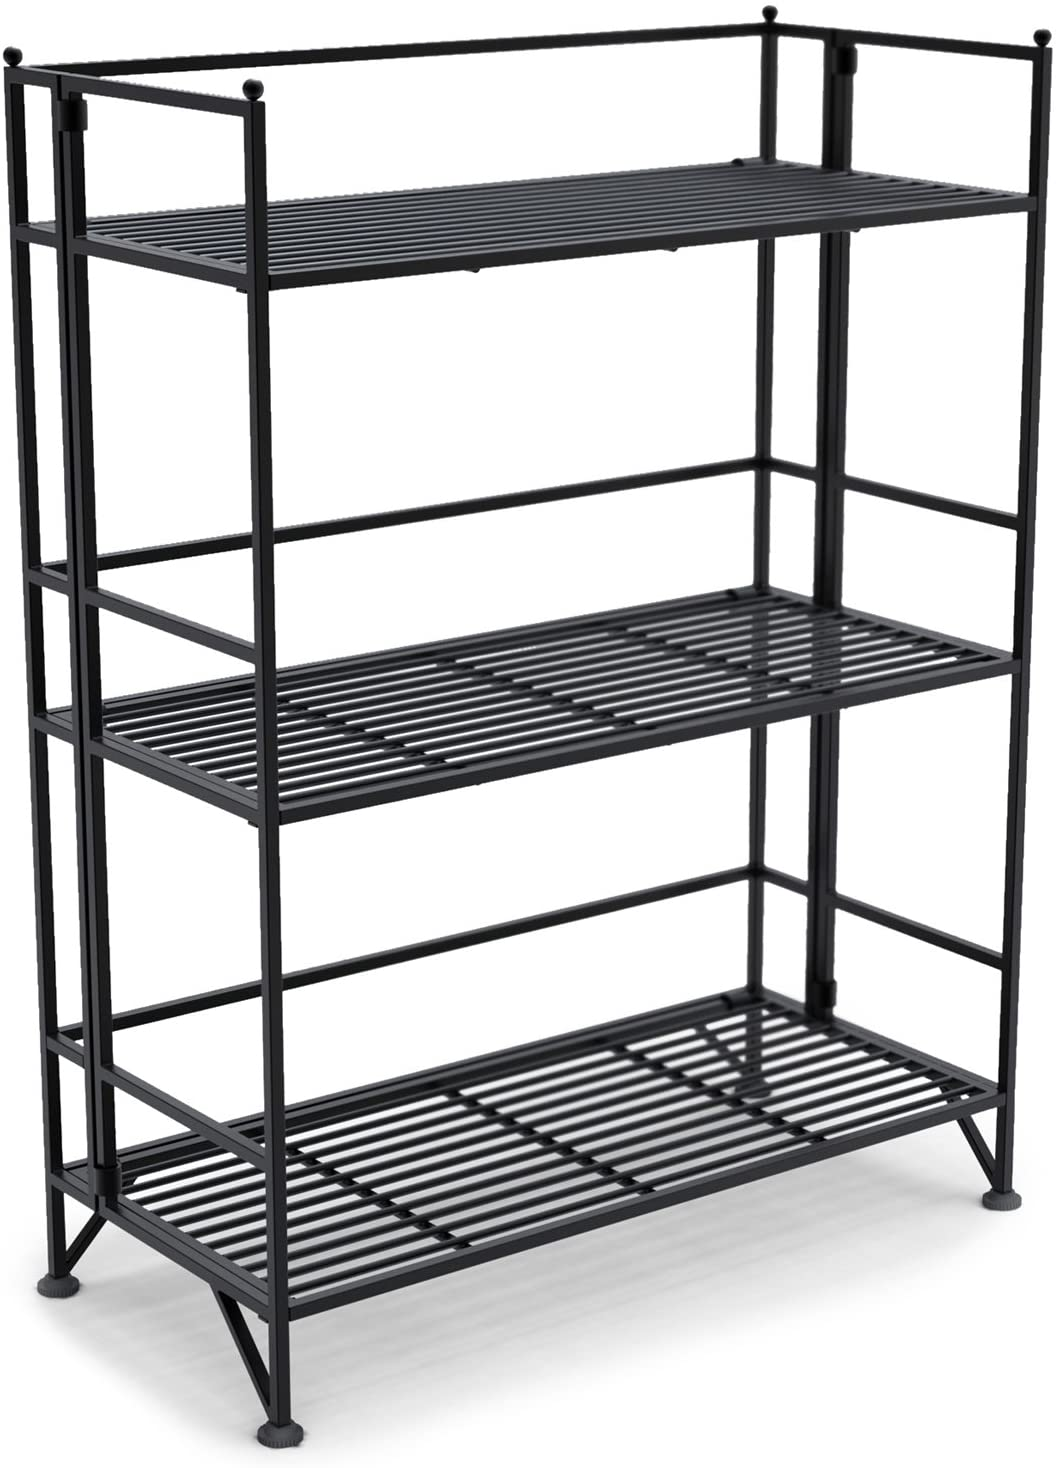 Convenience Concepts Xtra Storage Shelf